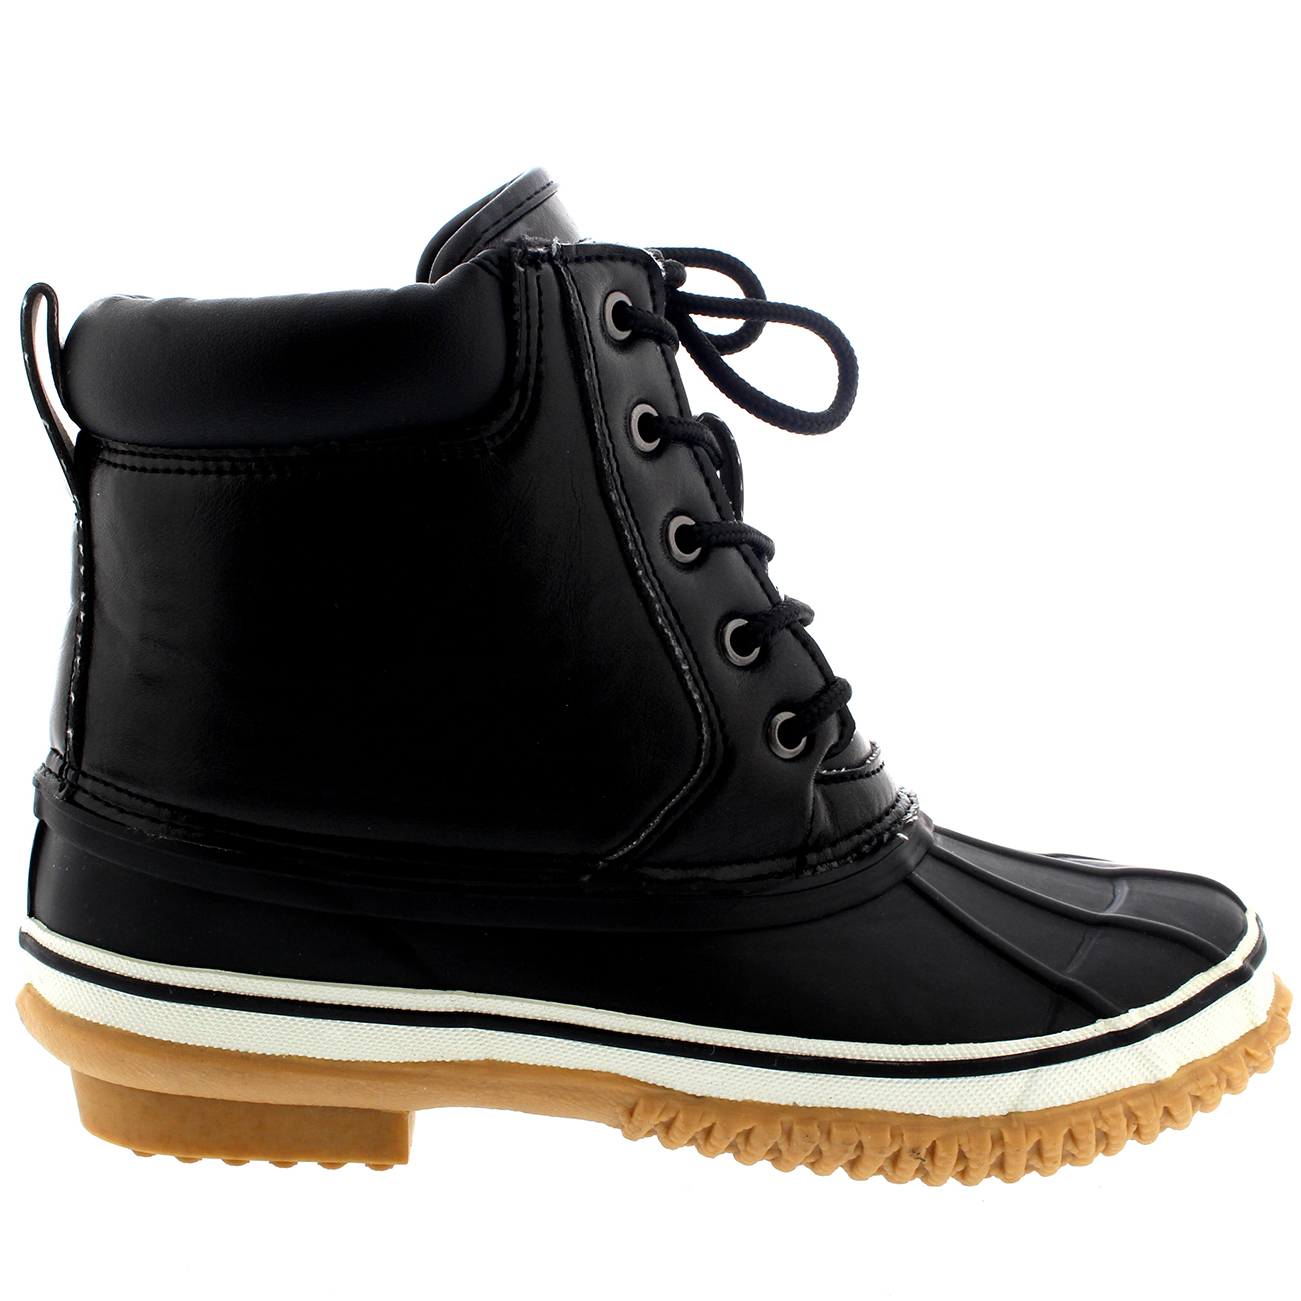 Awesome  Lace Up Fur Lined Warm Shoes Duck Winter Snow Boots UK 310  EBay